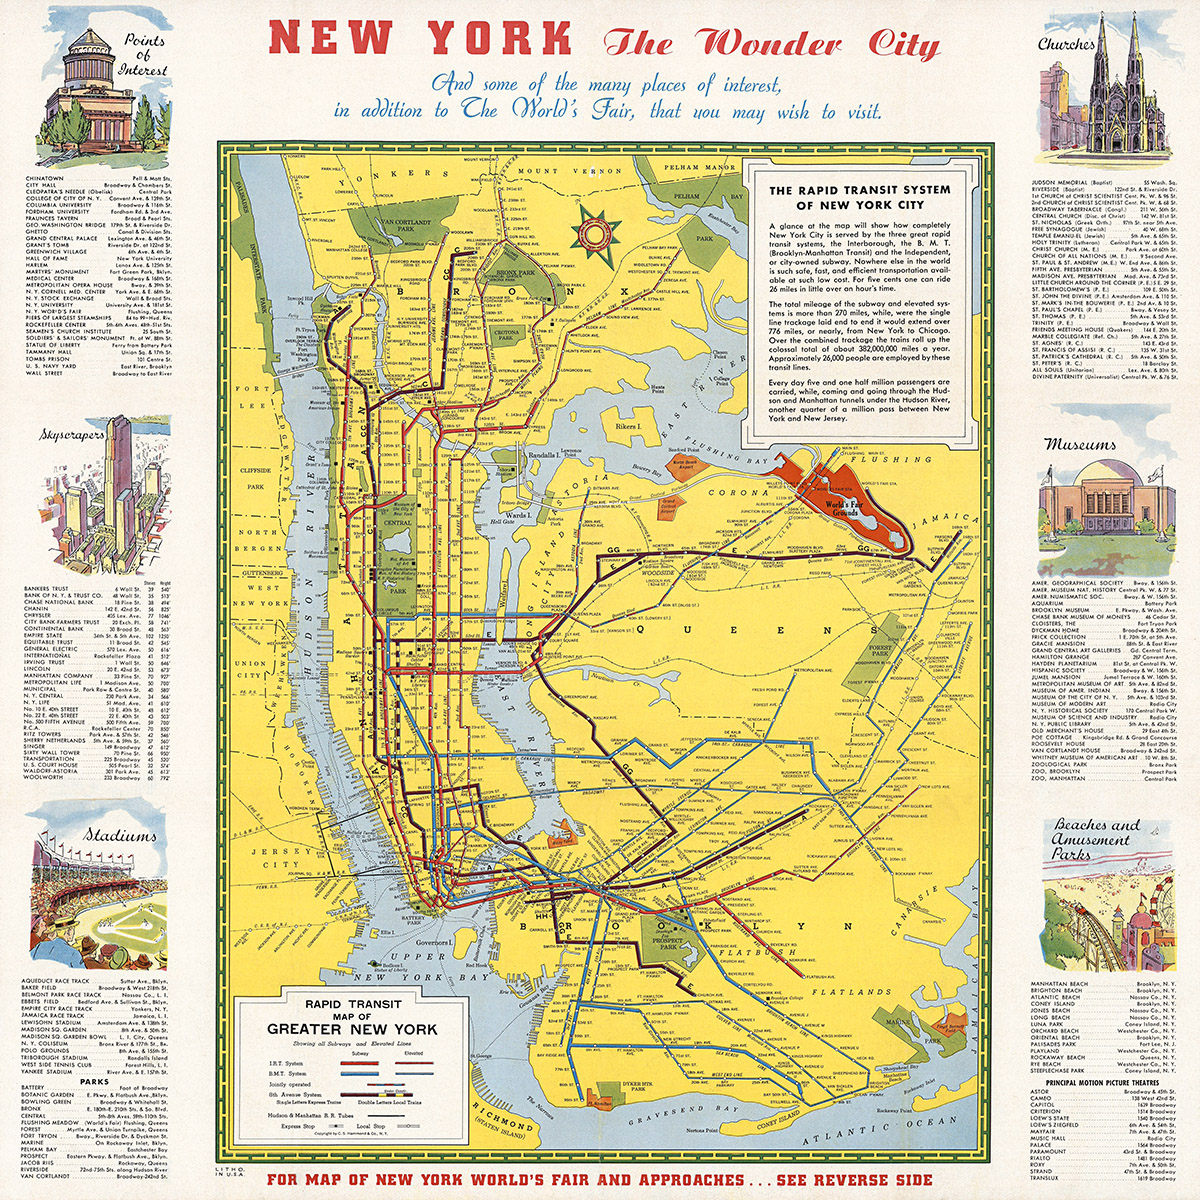 Greater New York Subway Map.1939 Rapid Transit Of Greater New York